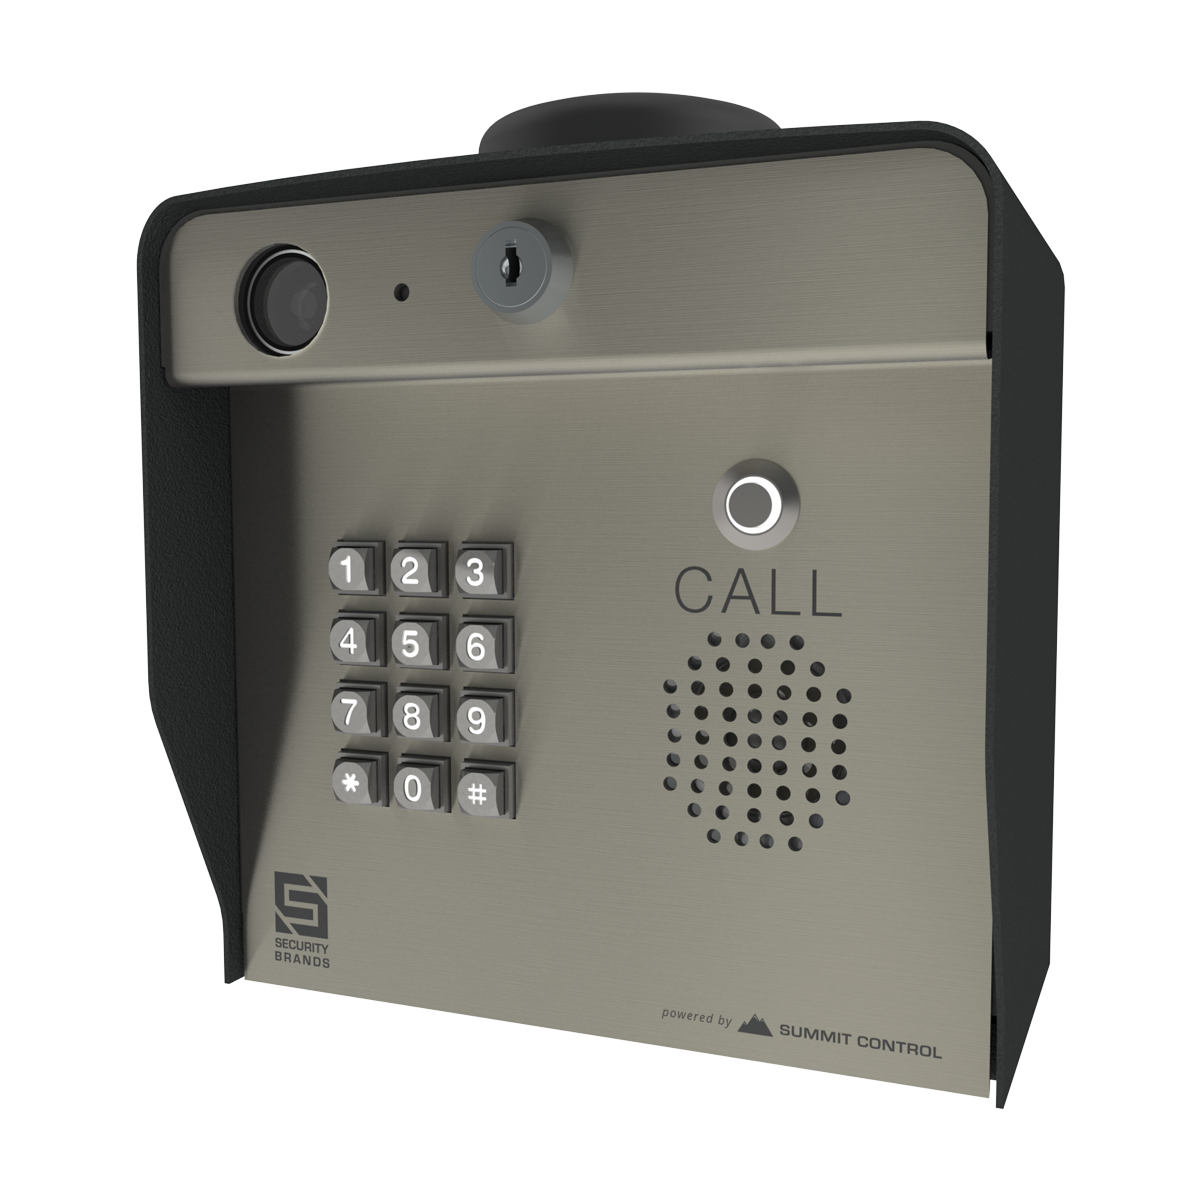 Ascent X1 Cellular Telephone Entry System With Keypad Security